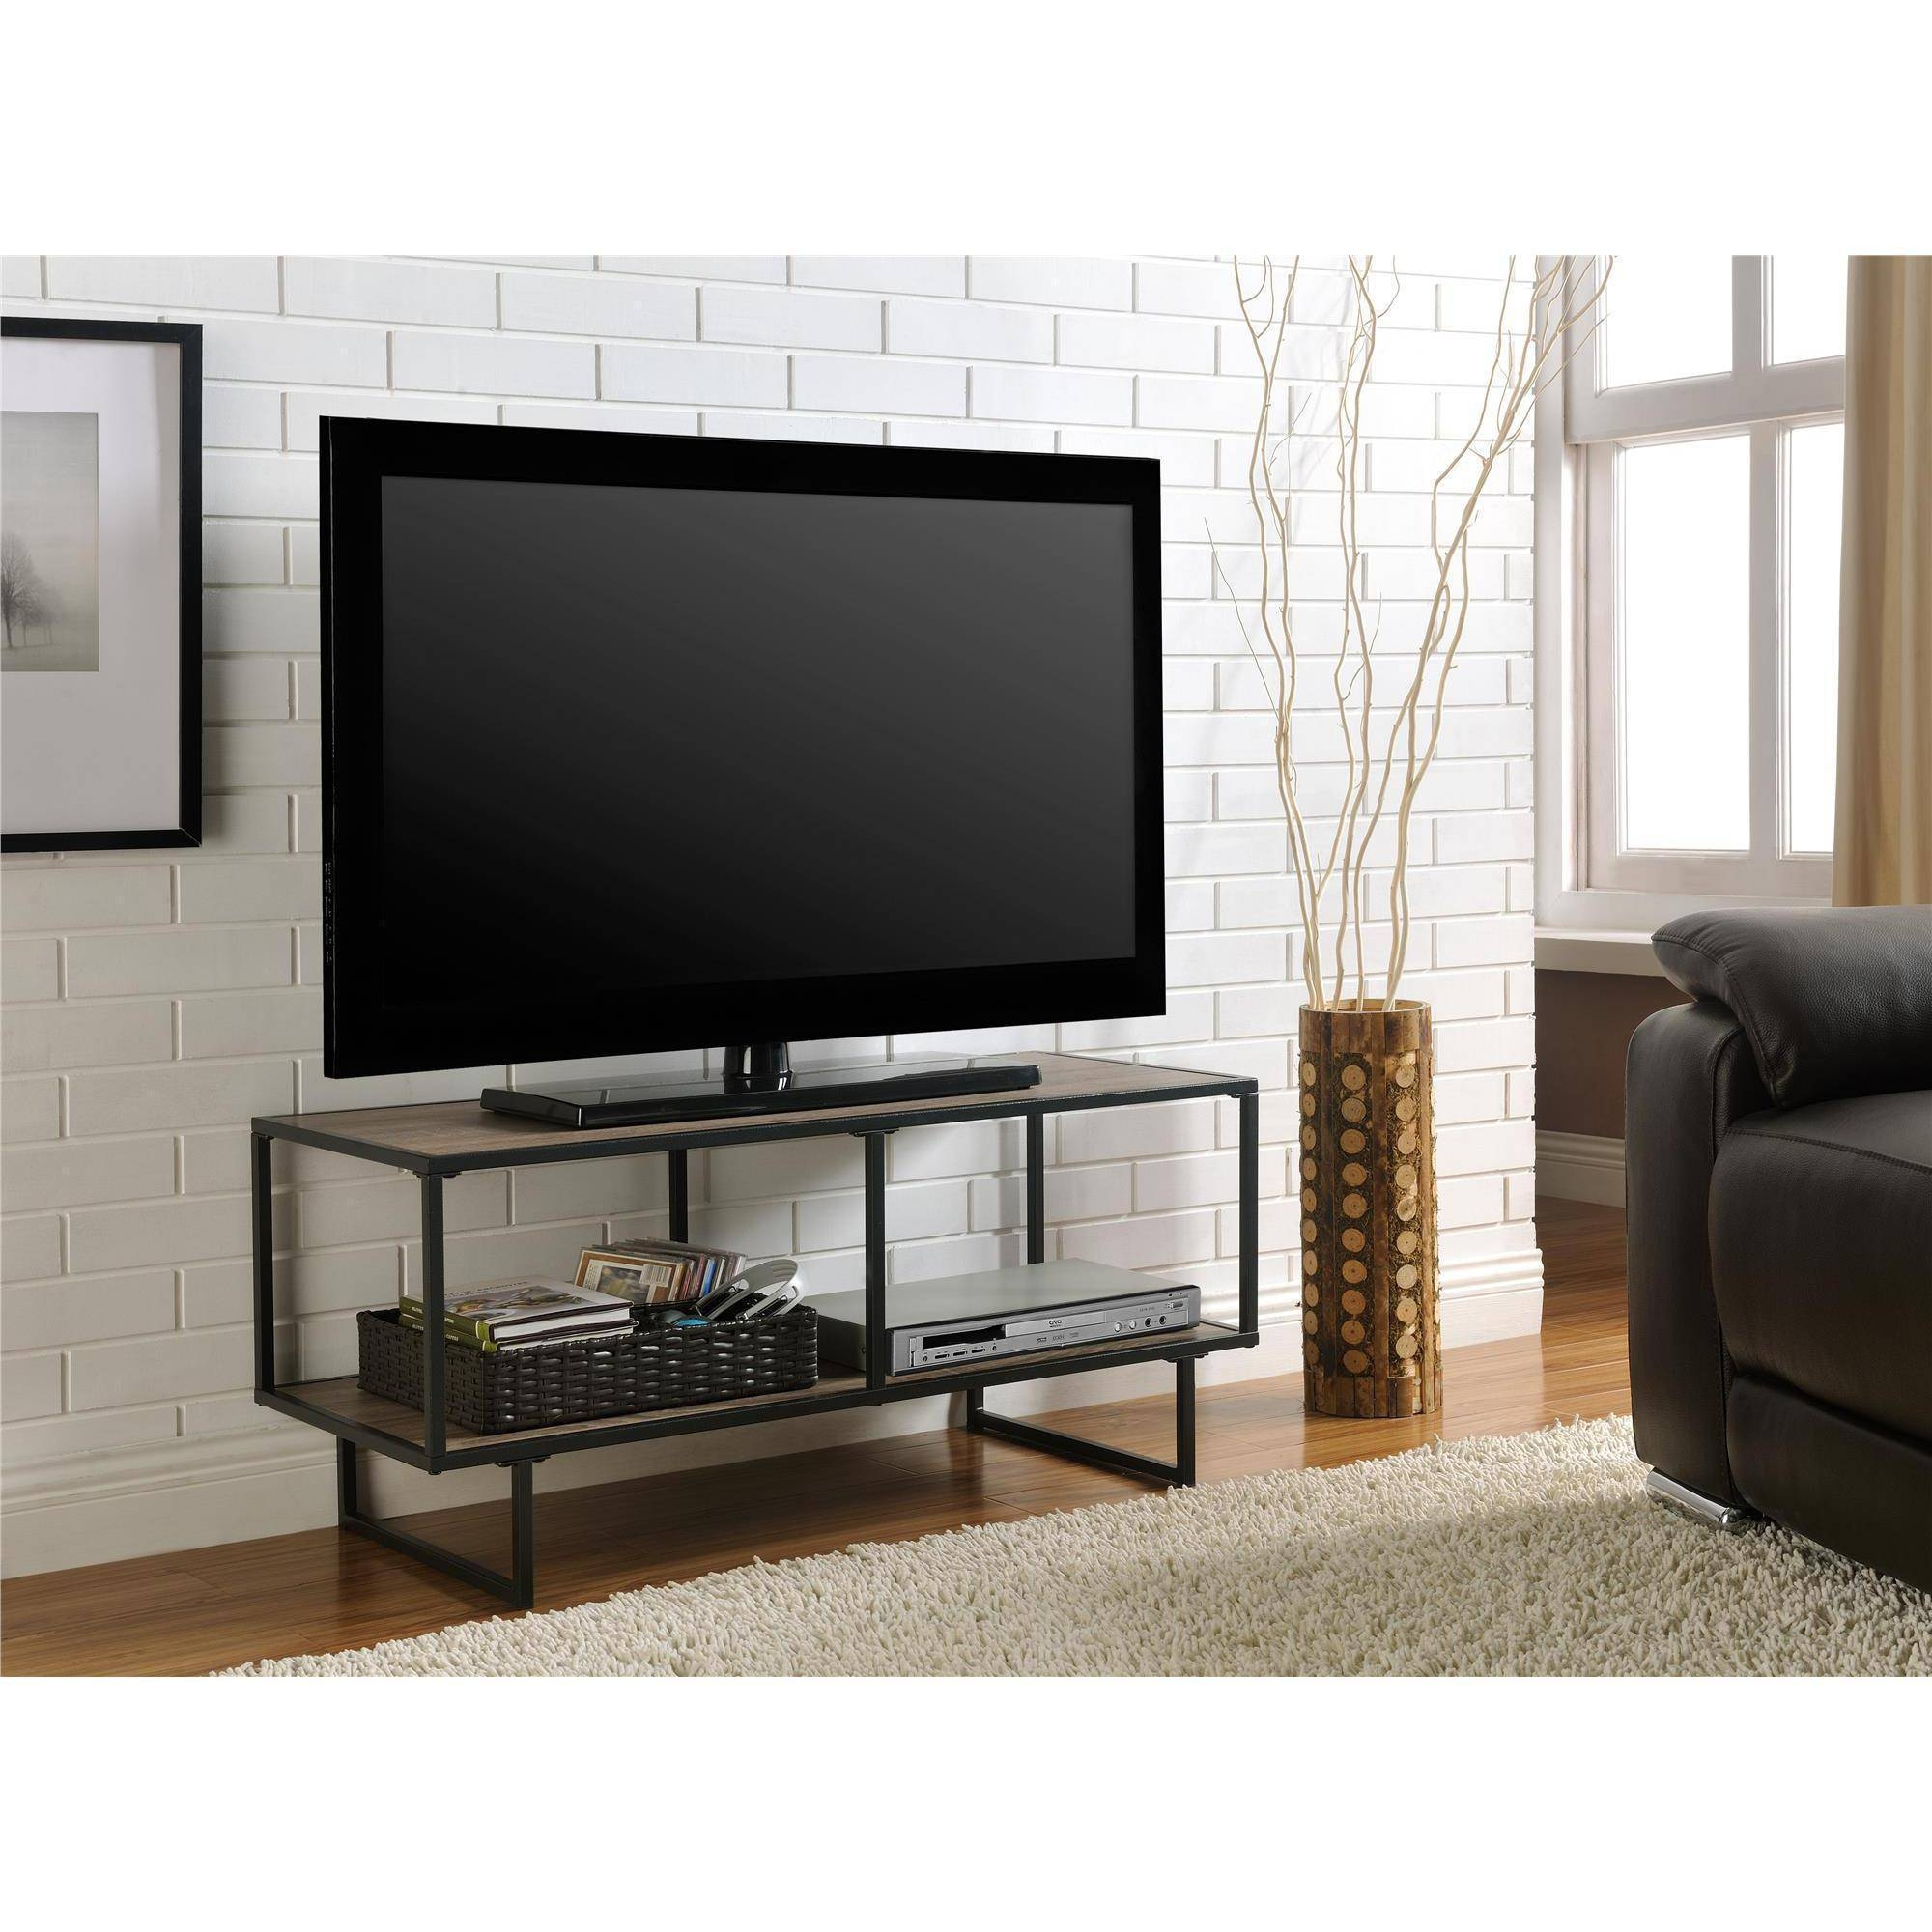 Altra Furniture Emmett 1 Shelf Tv Stand Coffee Table In Sonoma Oak pertaining to Grey Tv Stands (Image 2 of 15)